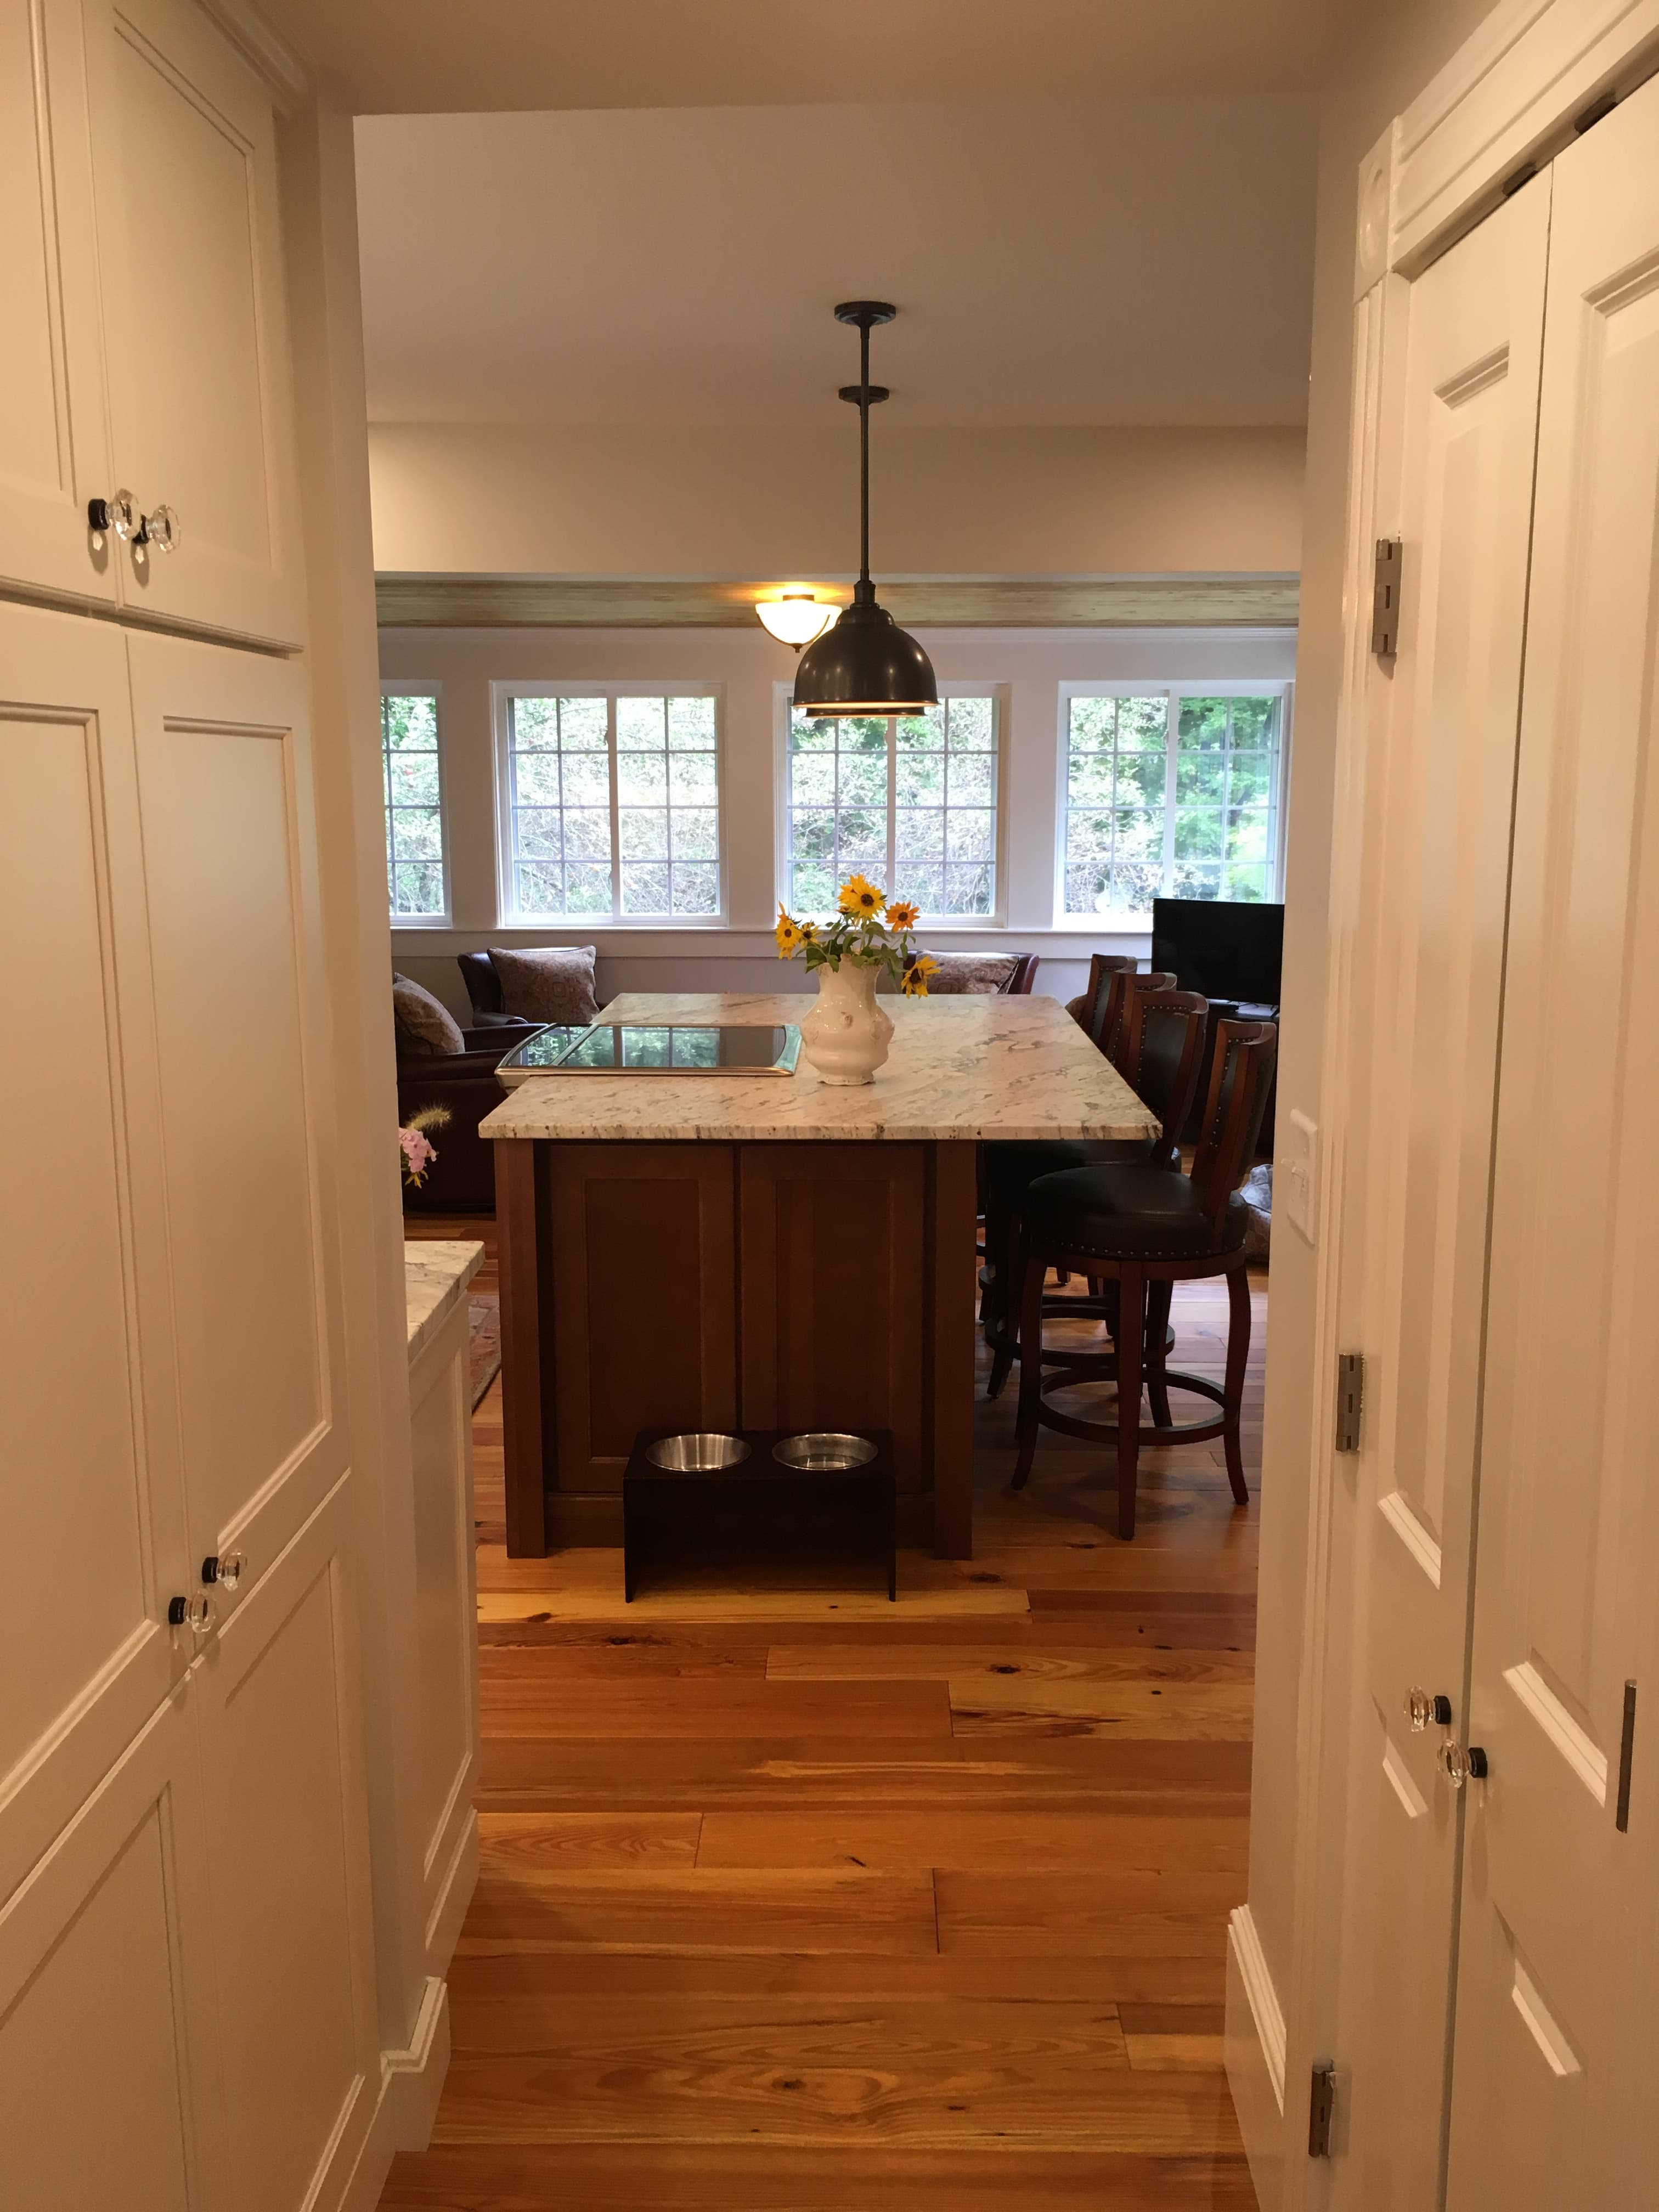 The Stone Cobblers Kitchen Cabinets And Countertops Ma